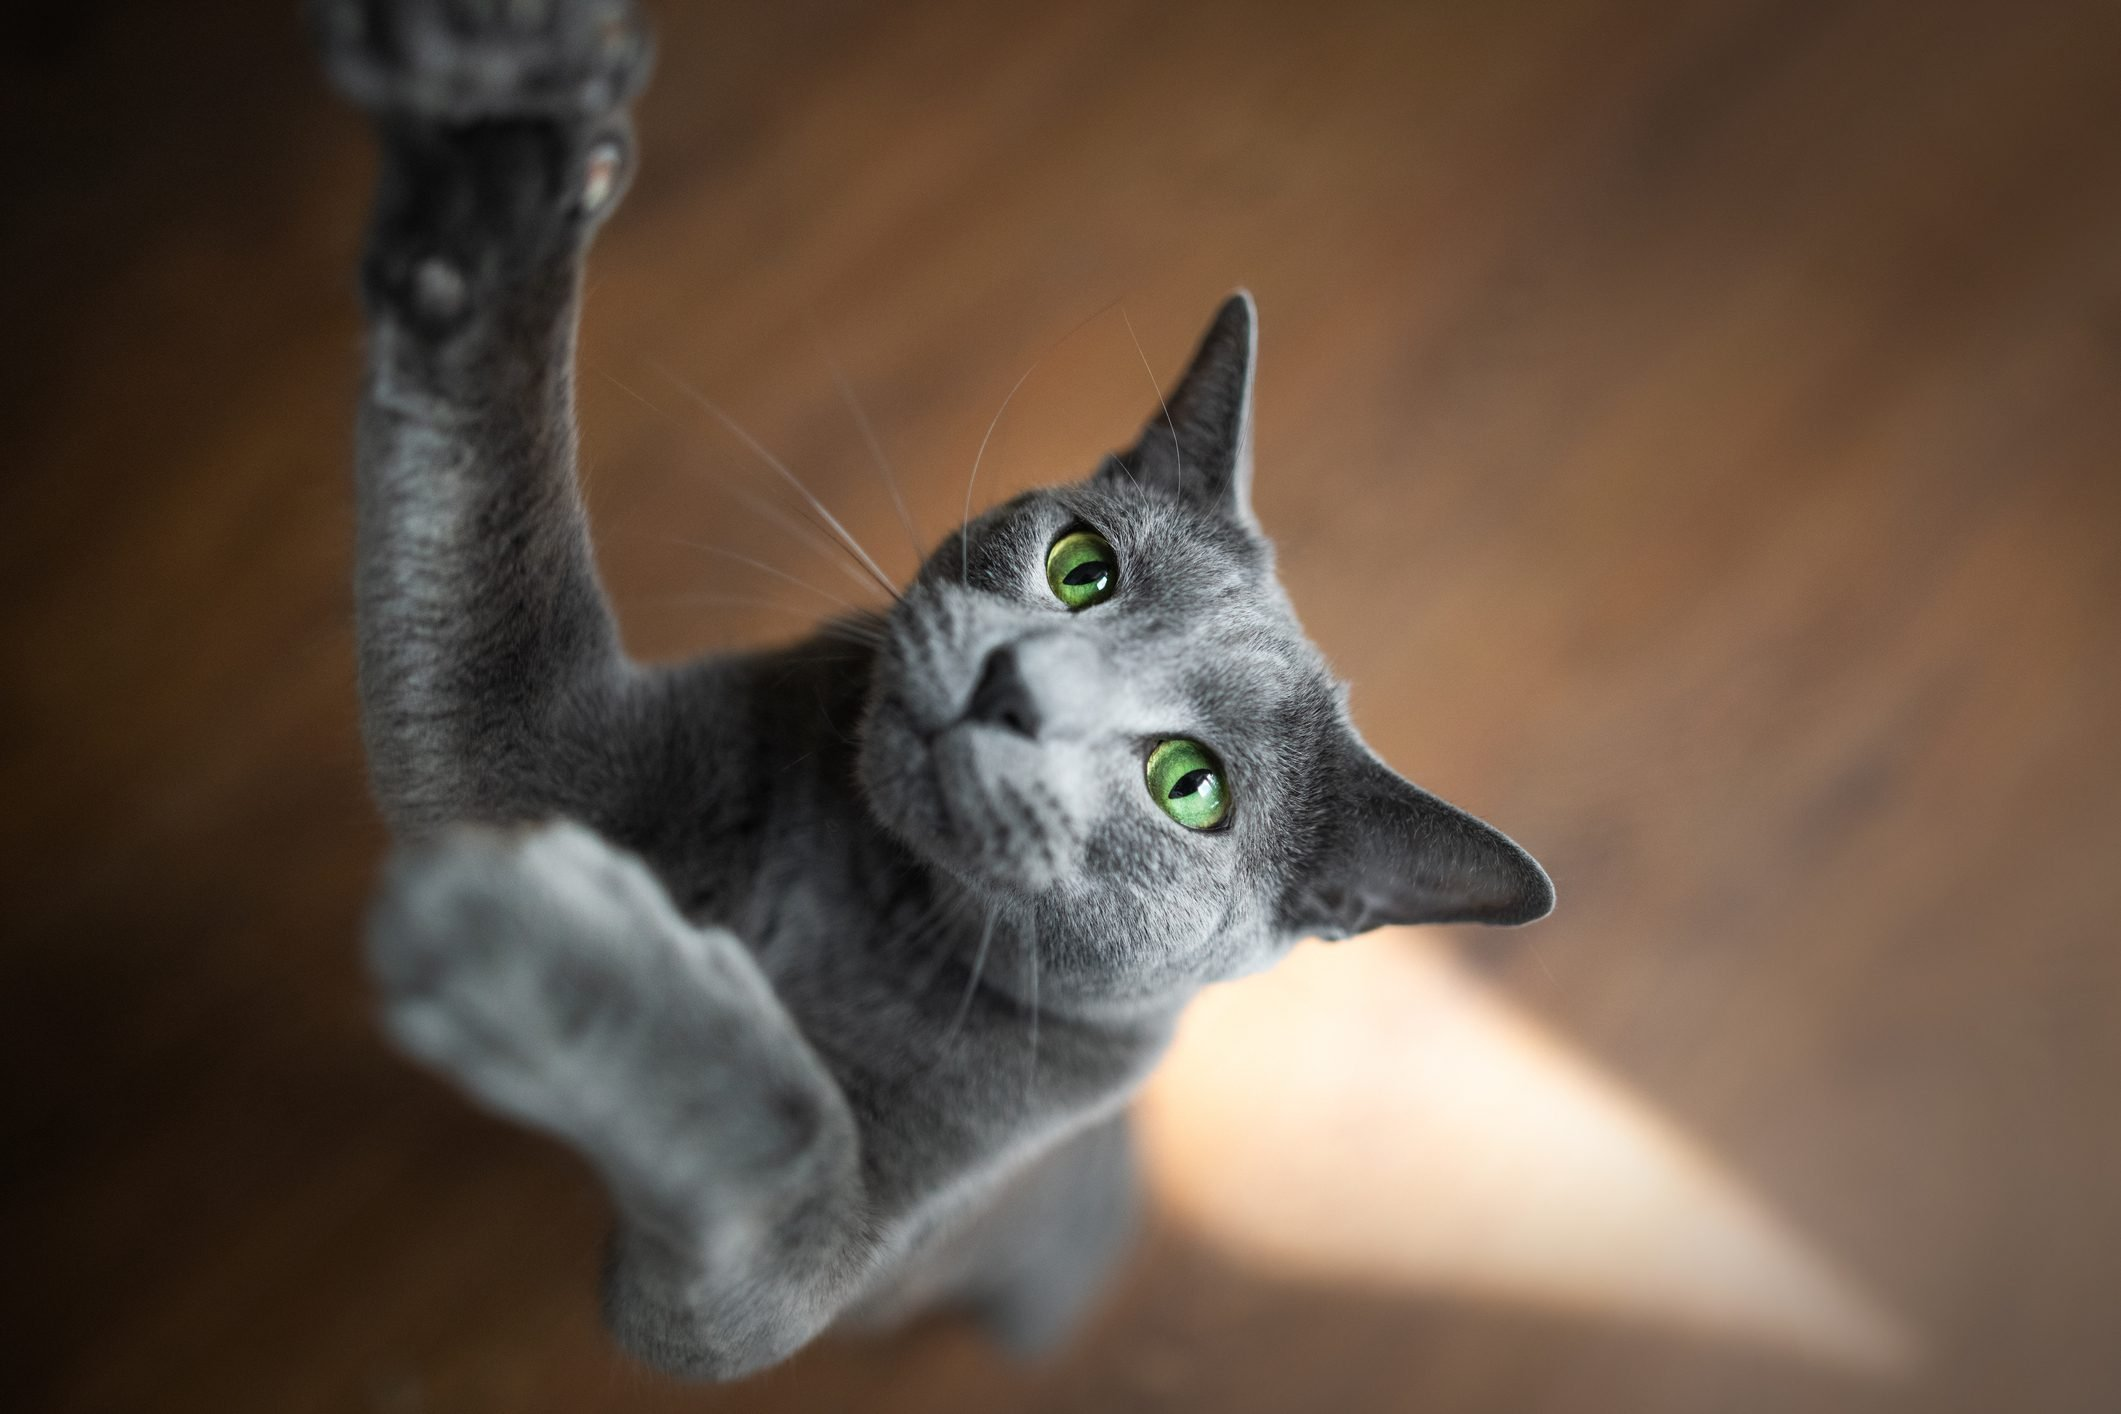 High angle view of cat on hardwood floor reaching for toy,Hakadal,Norway